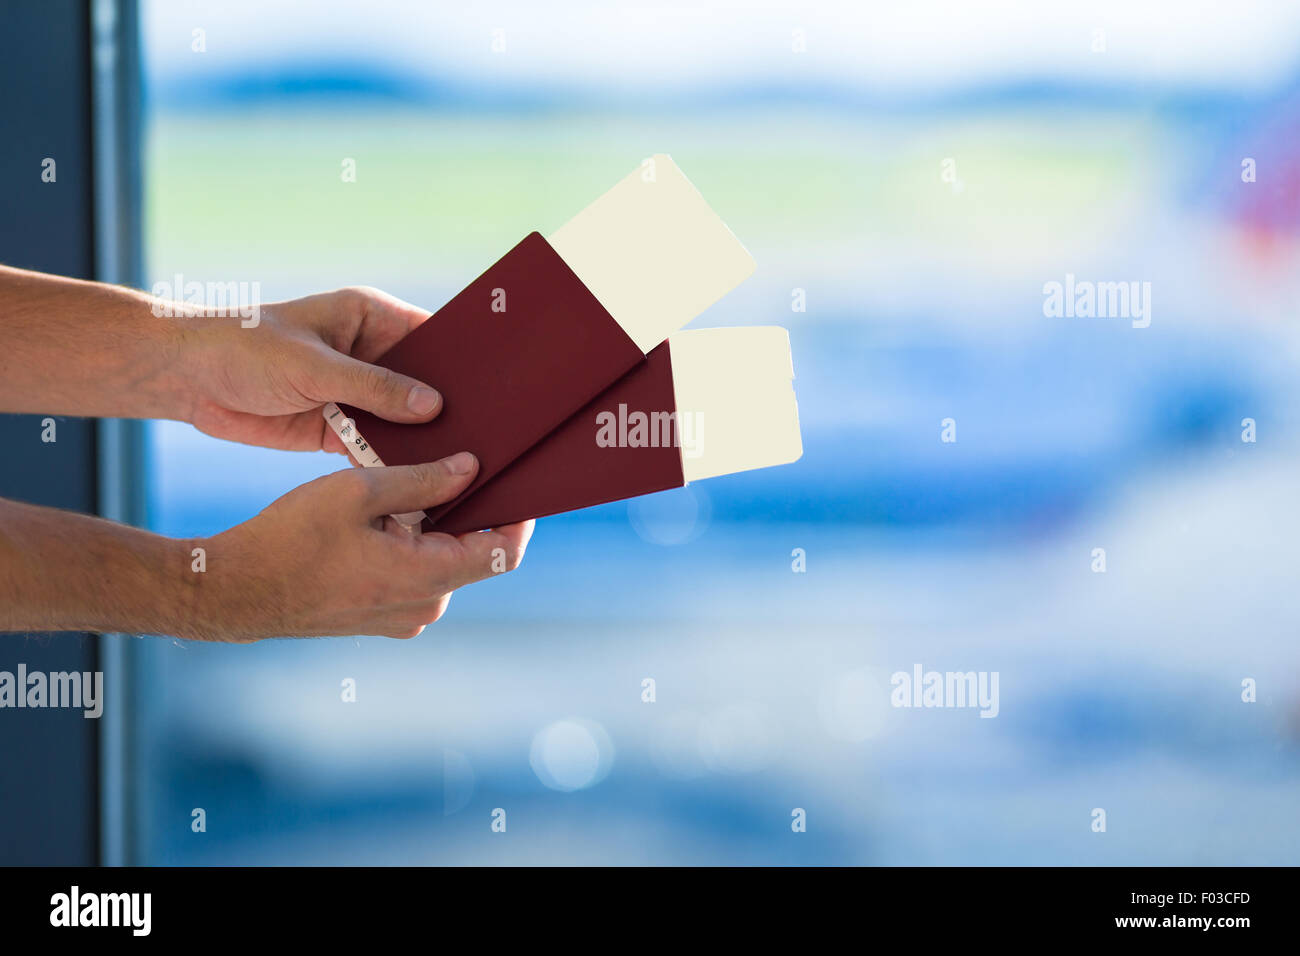 Closeup passports and boarding pass at airport indoor background airplane - Stock Image